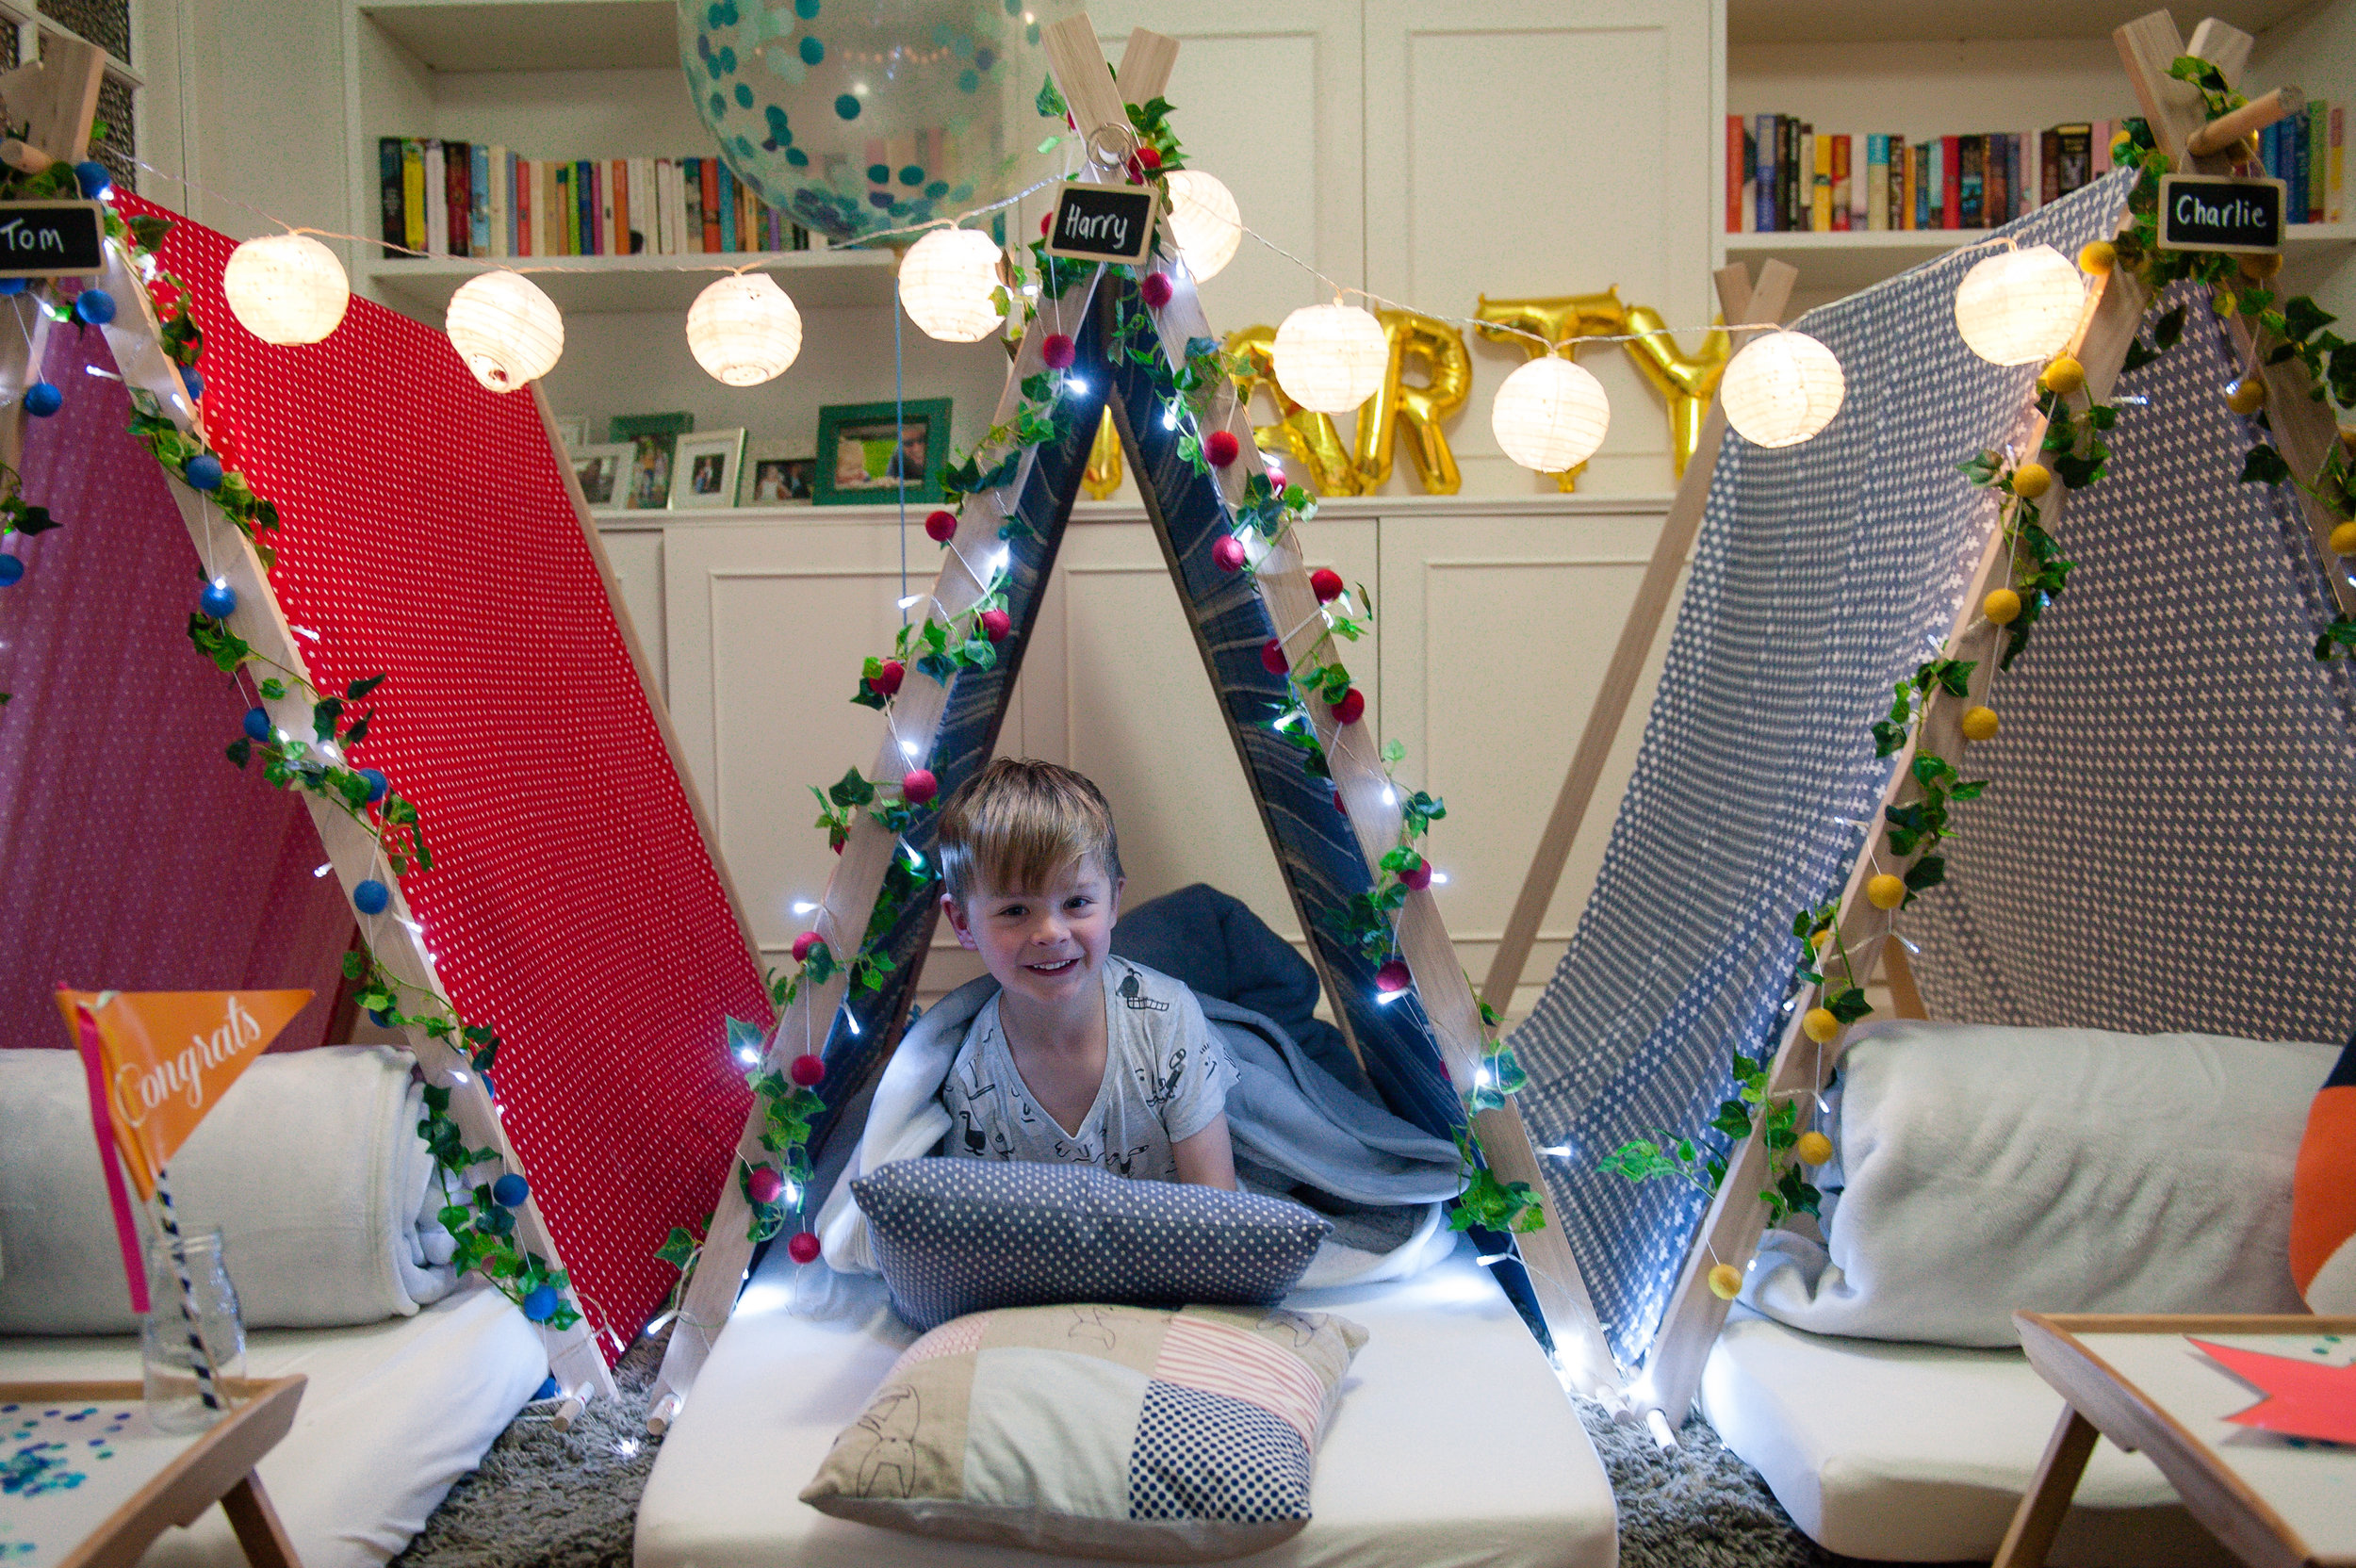 Teepee Dreams Melbourne boys sleepover parties